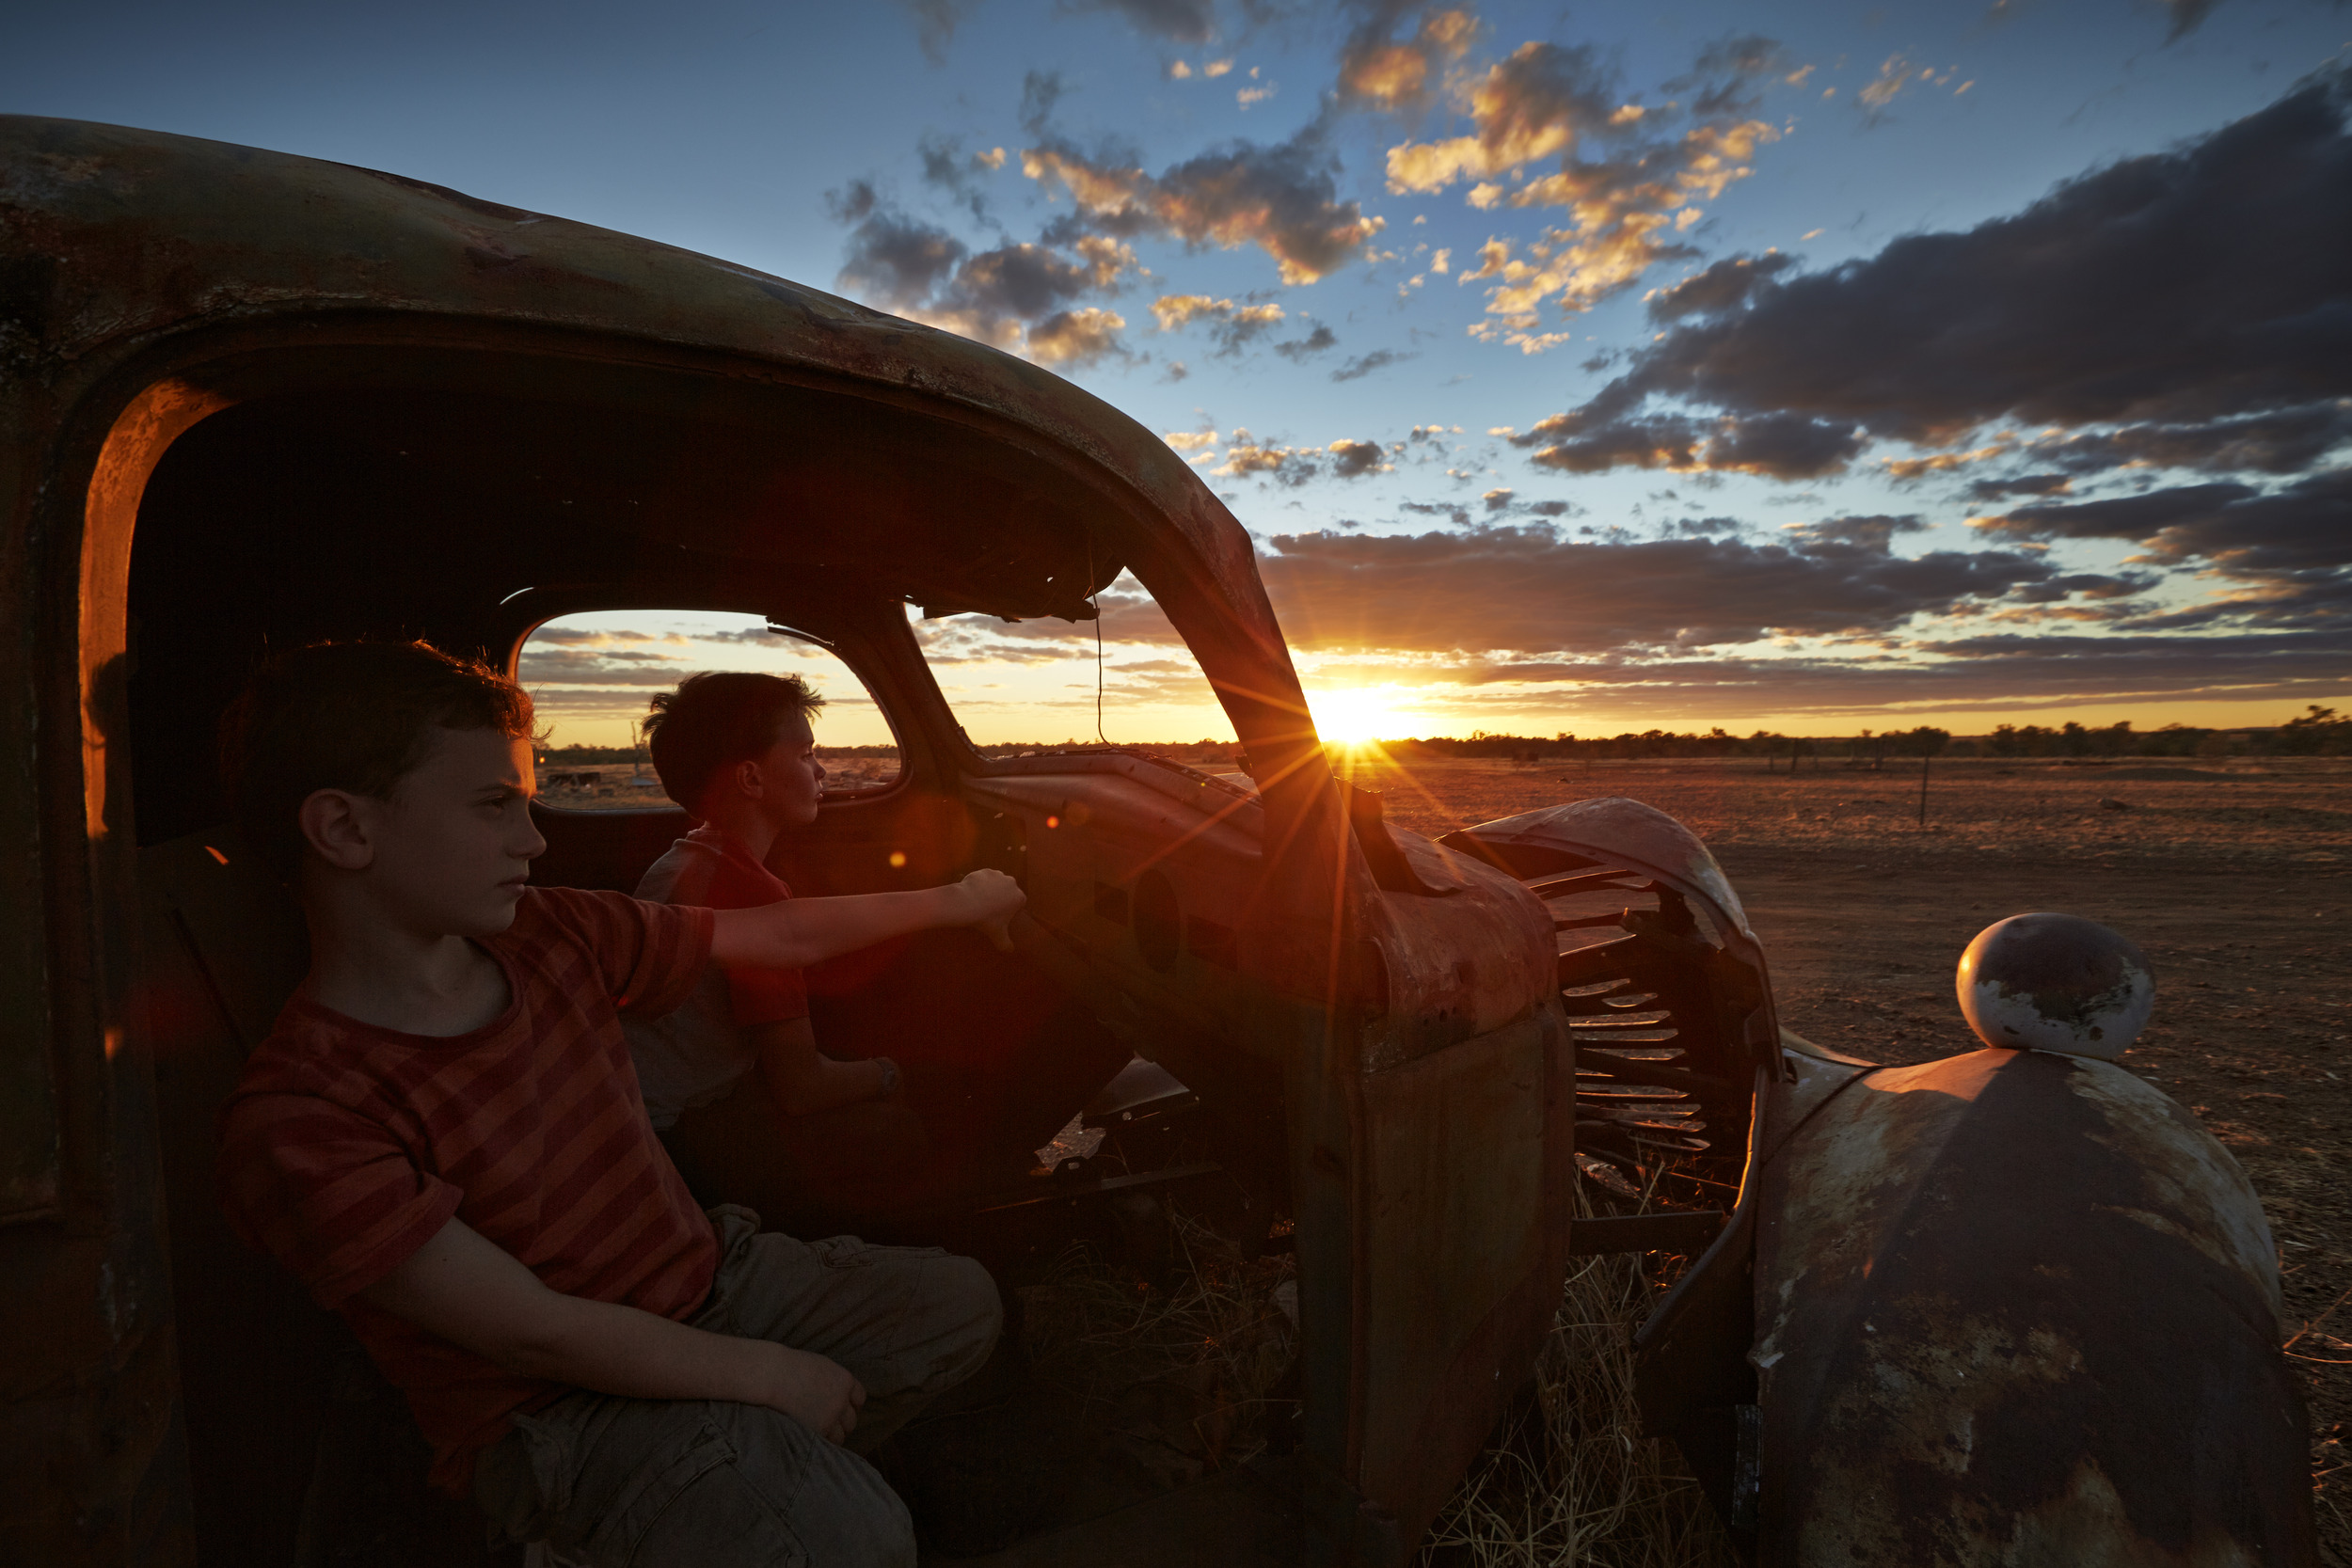 Showing the Arrows of Fire 'extras' the real Aussie outback